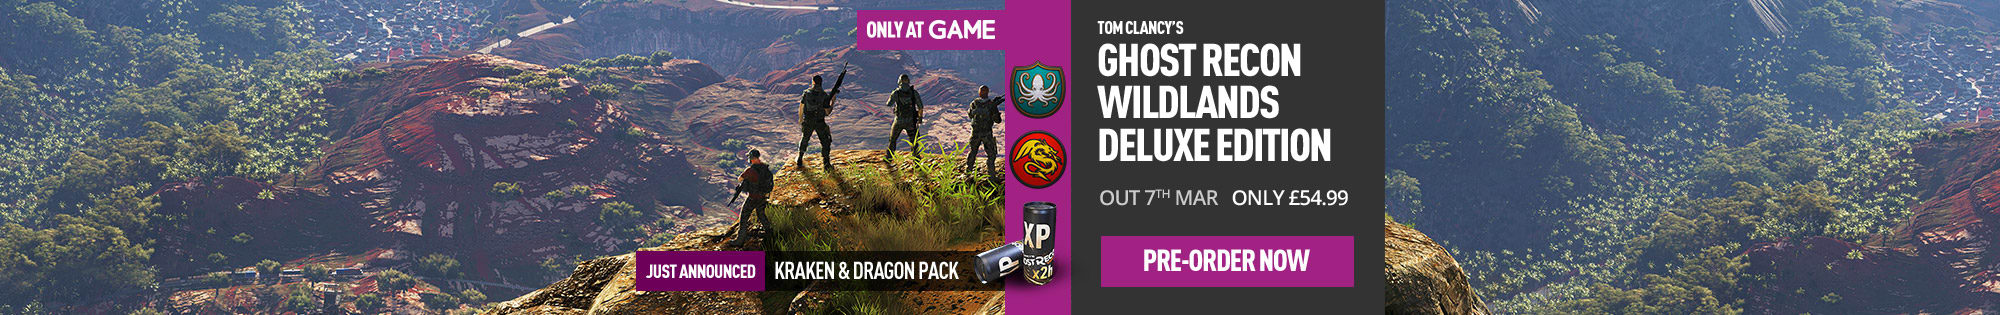 Tom Clancy's Ghost Recon Wildlands GAME Exclusive Deluxe Edition for Xbox One, PC and PS4 - Pre-order Now at GAME.co.uk!